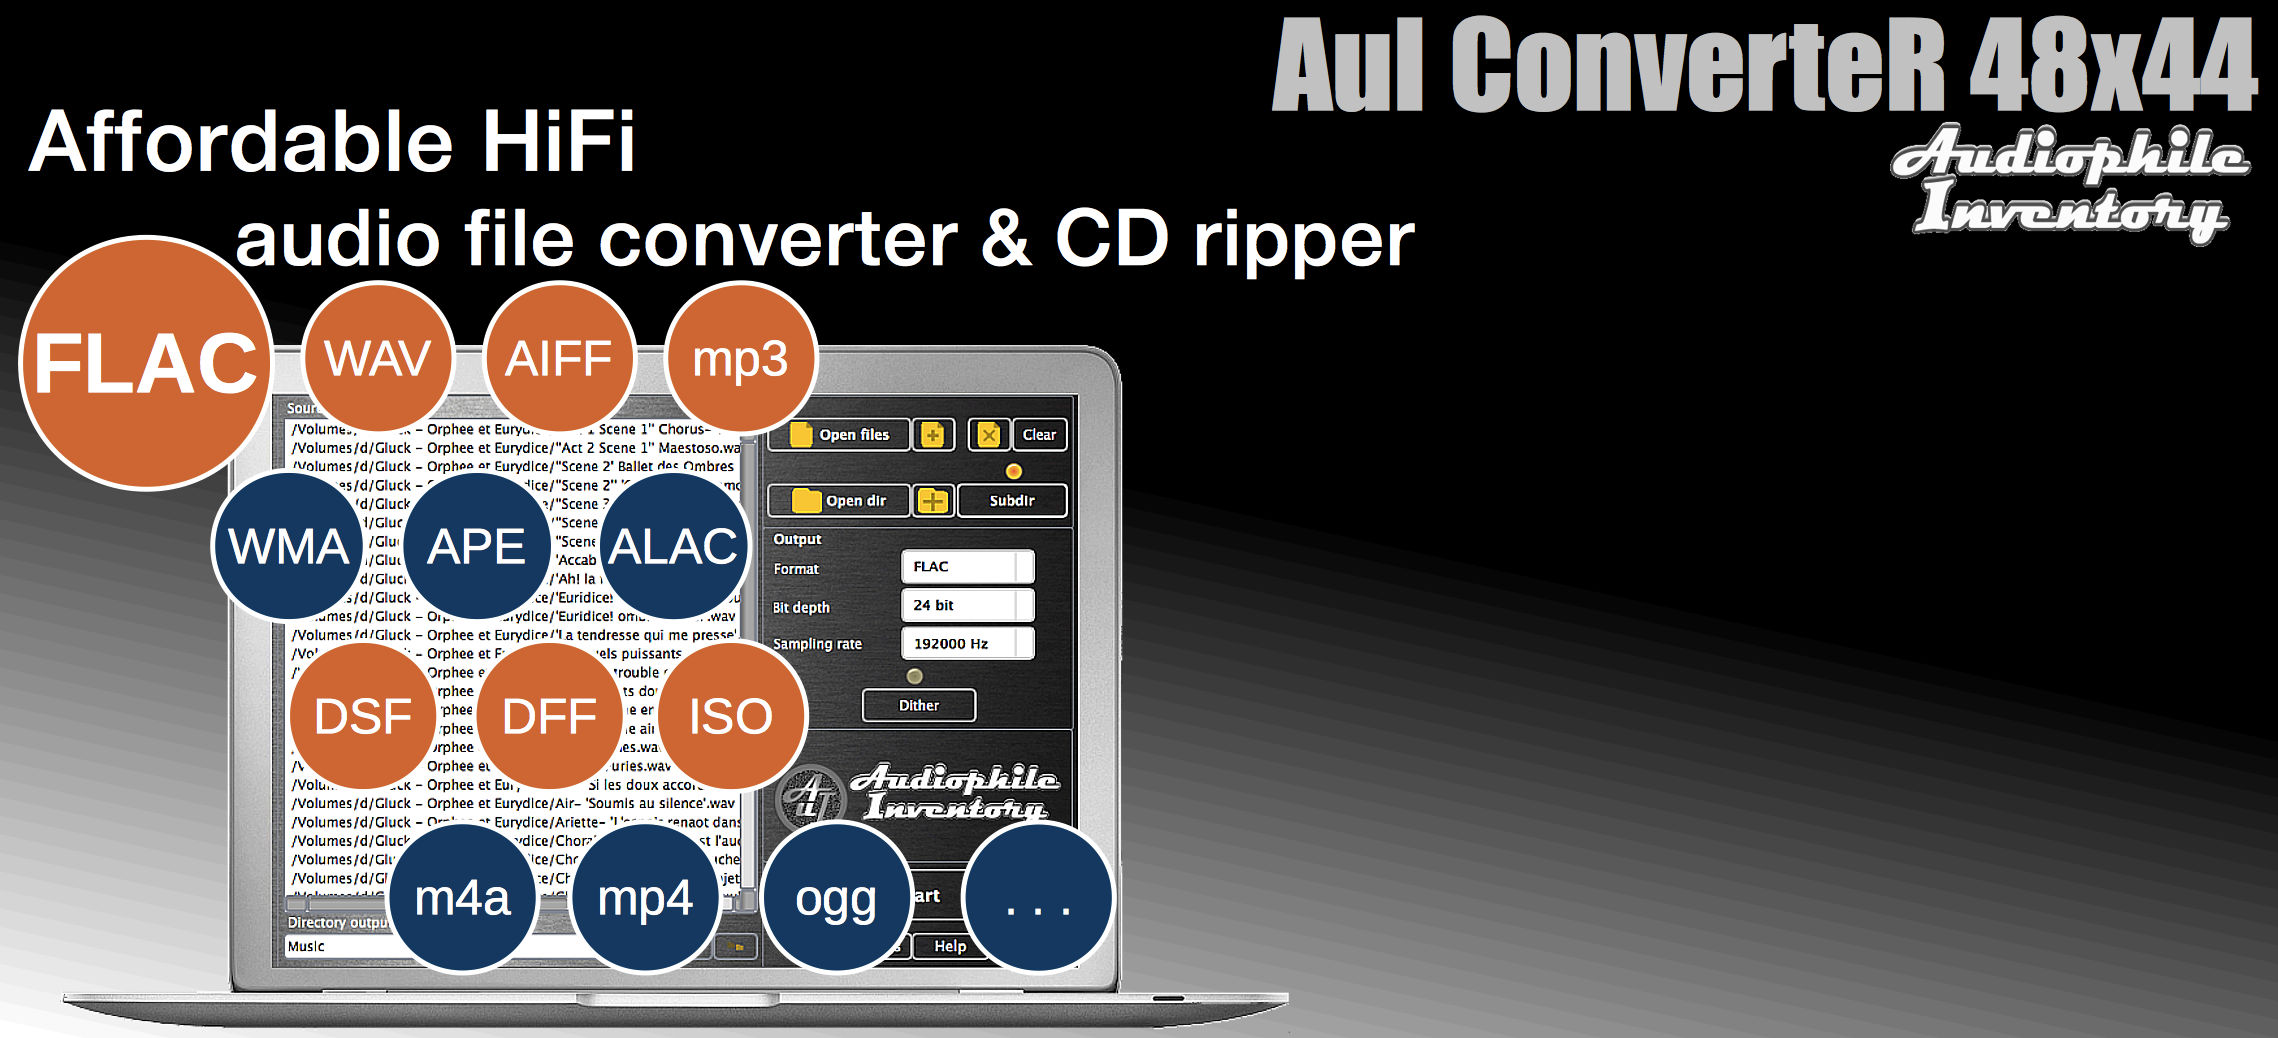 FLAC Converter for Mac OSX, Windows